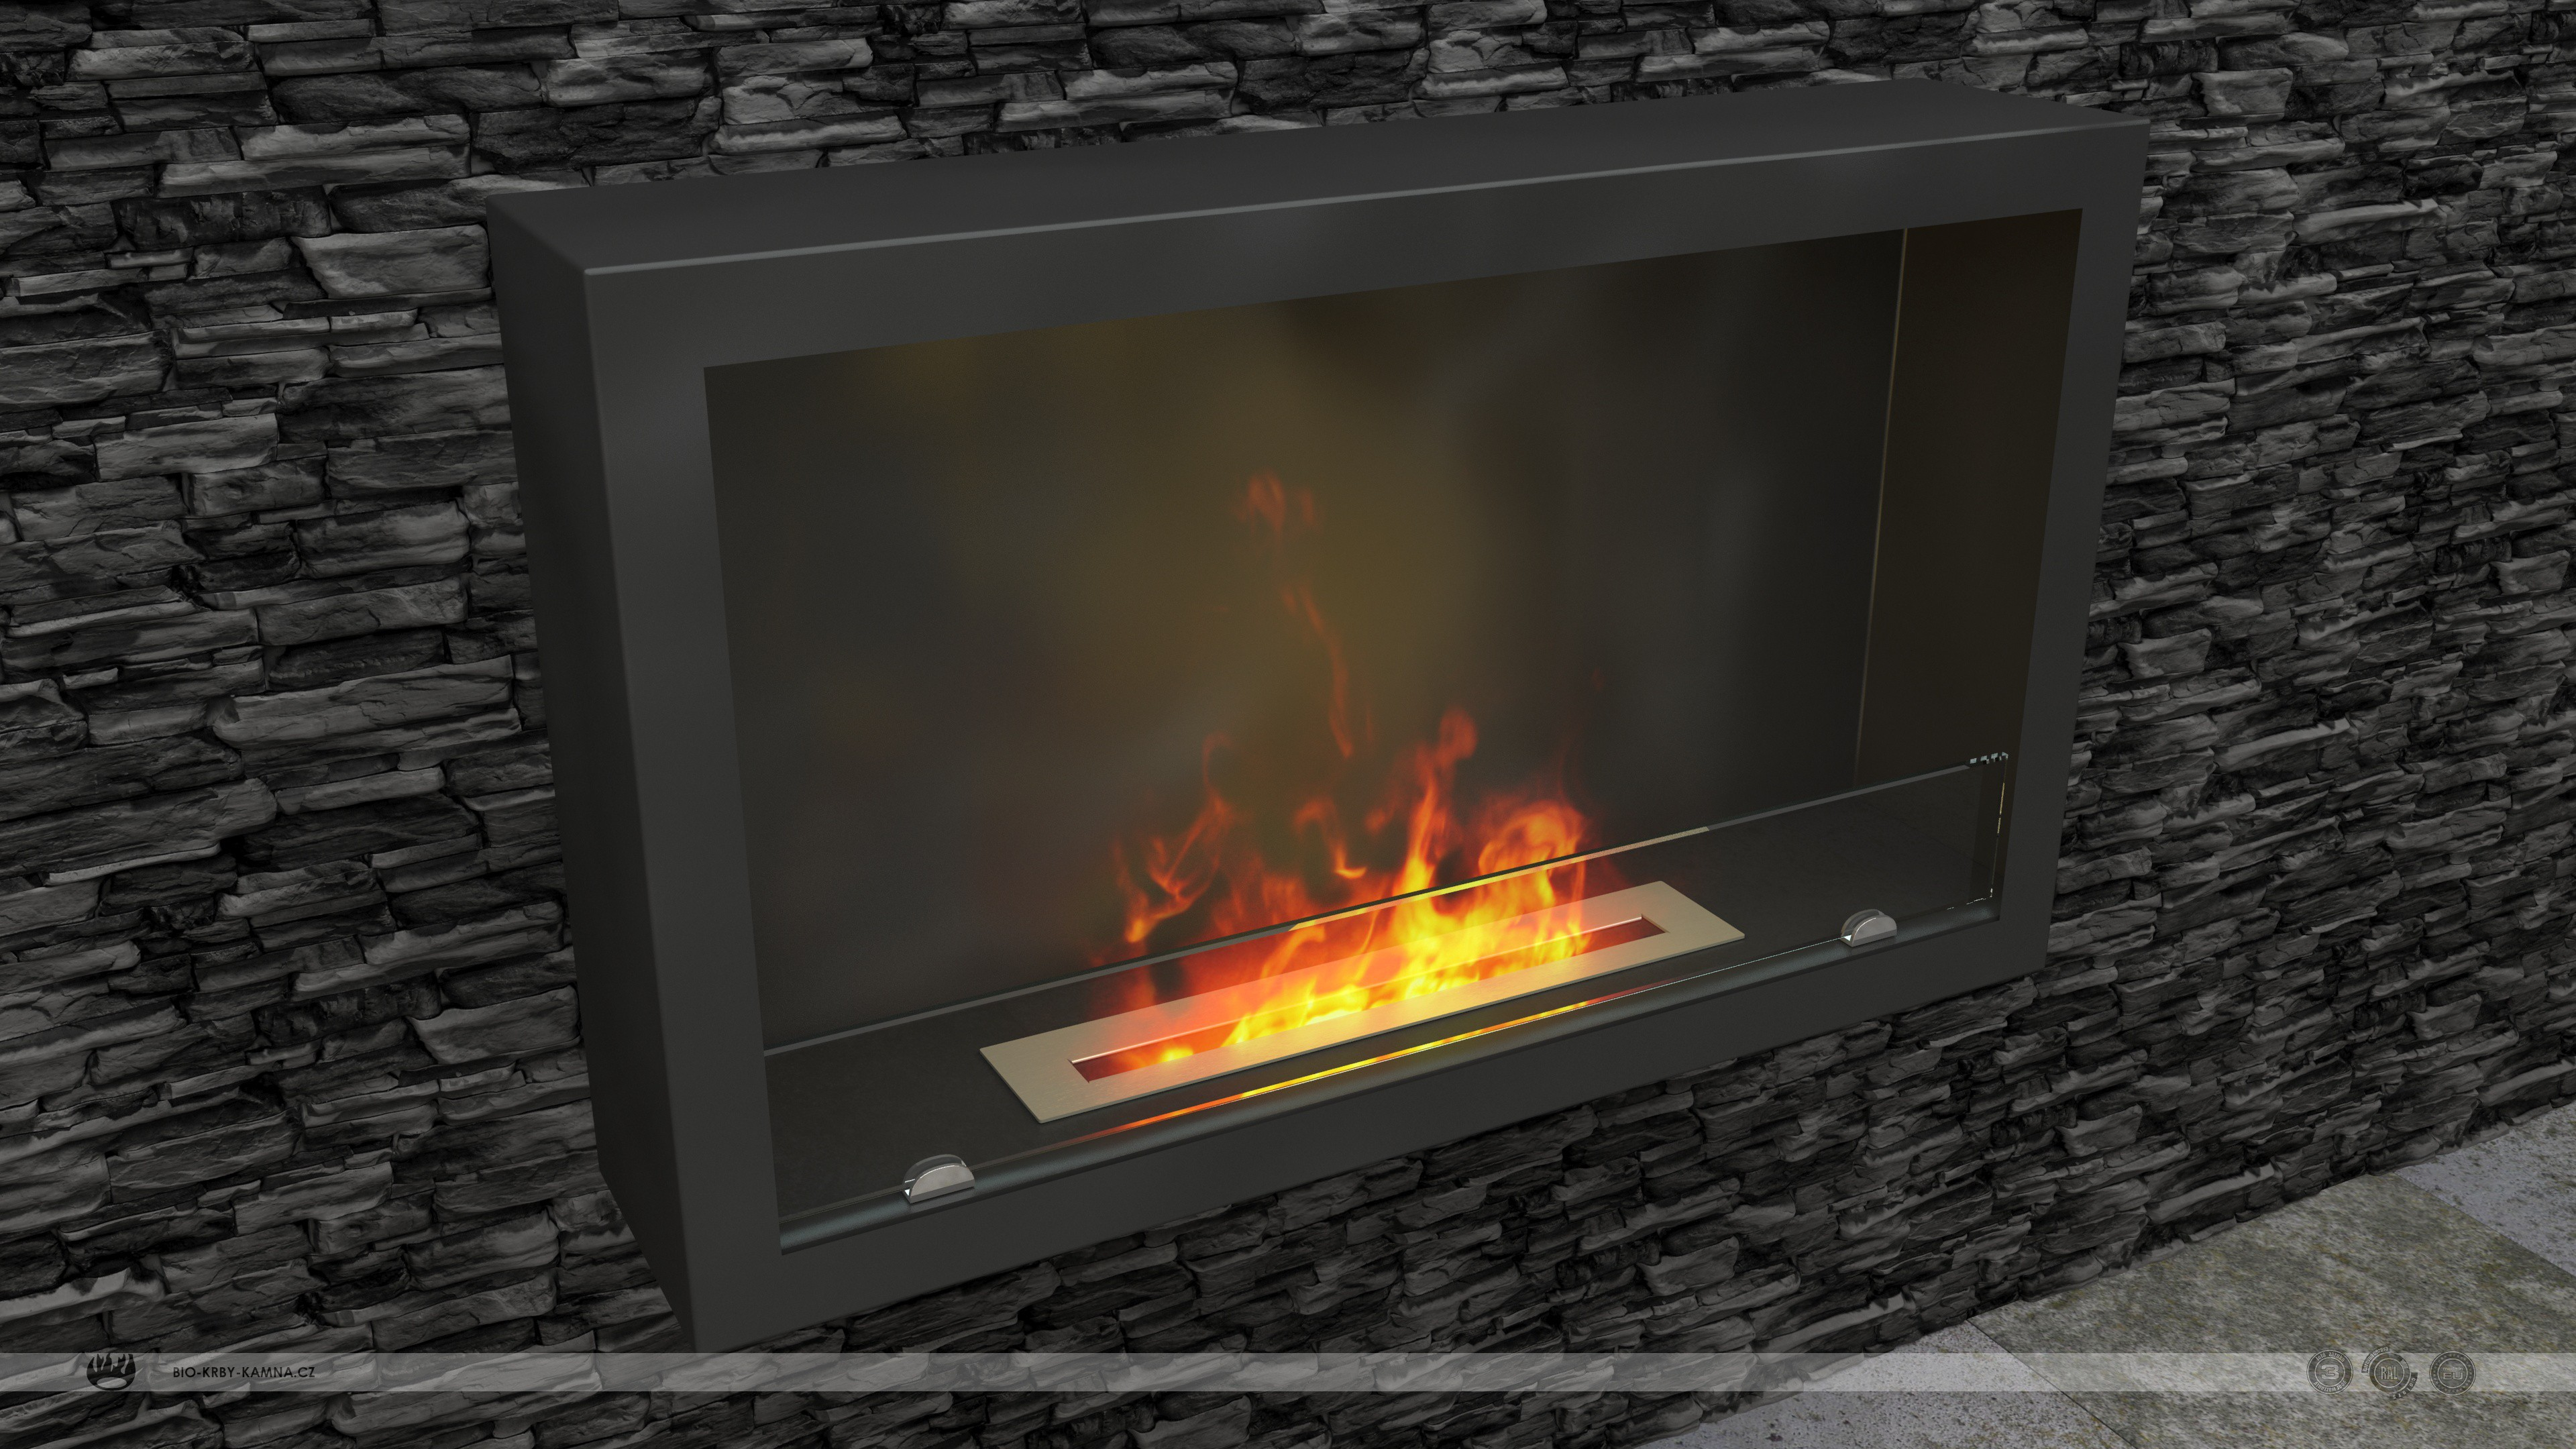 Fireplace without chimney AF-61 + Burner 480